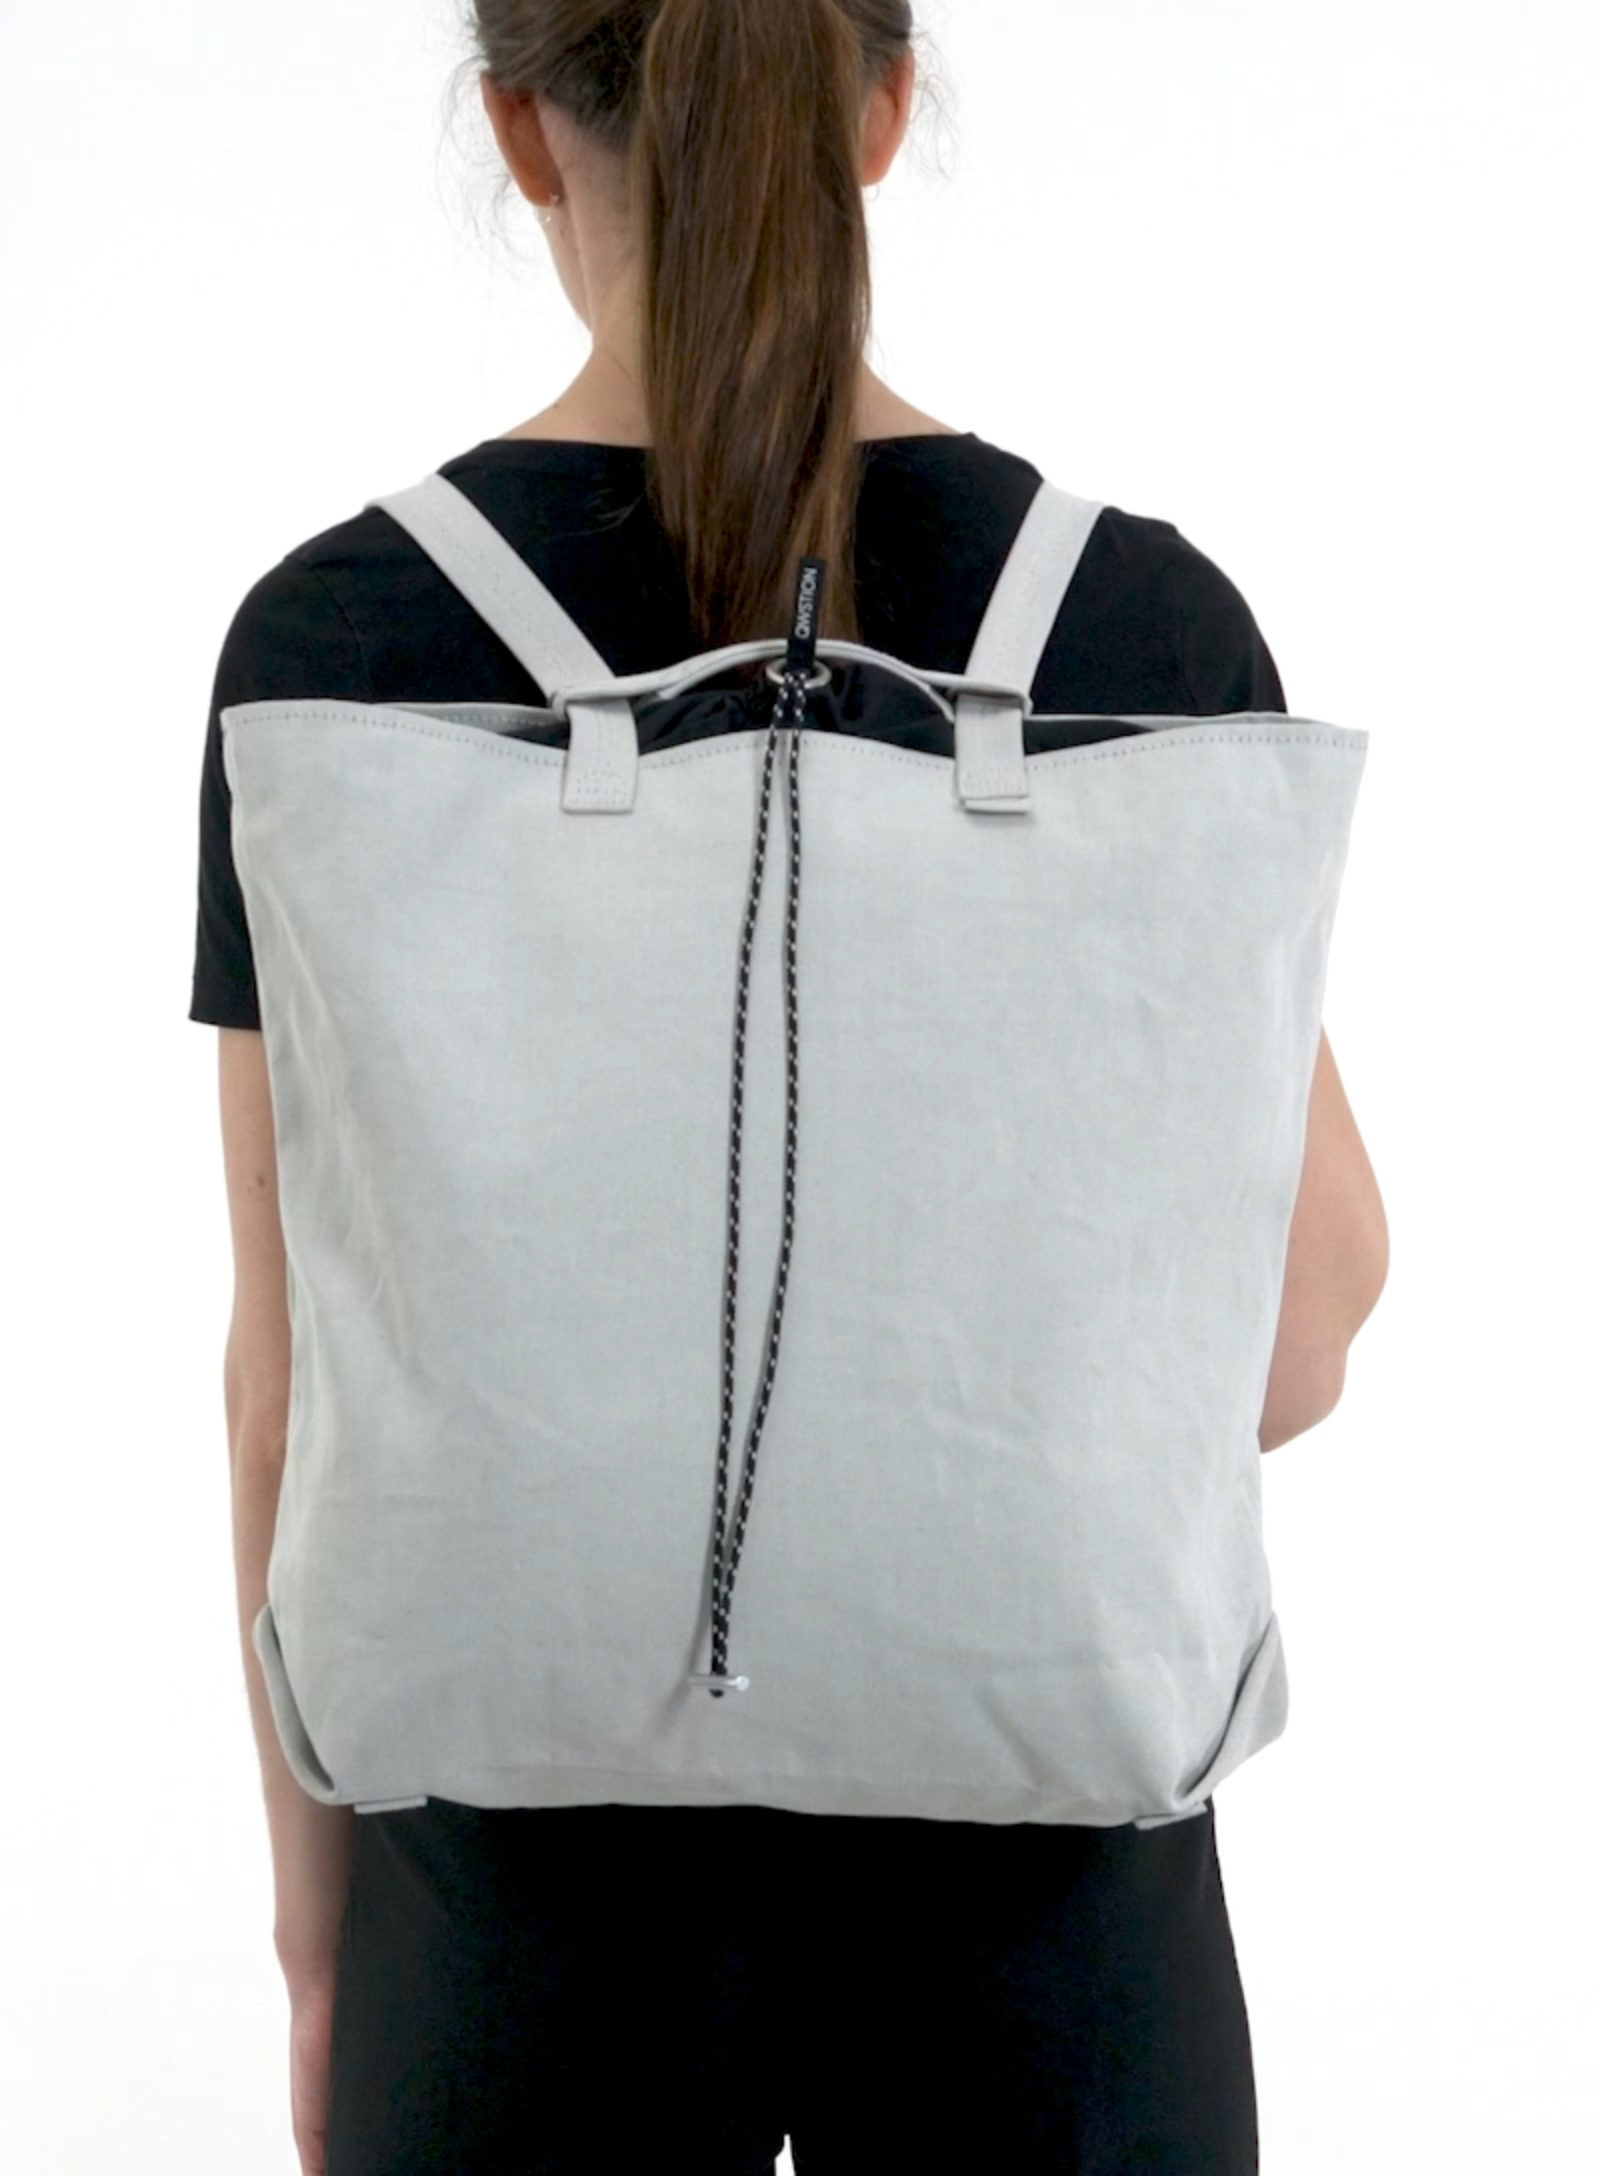 Fallback home qwstion mco tote bag large gravel raven